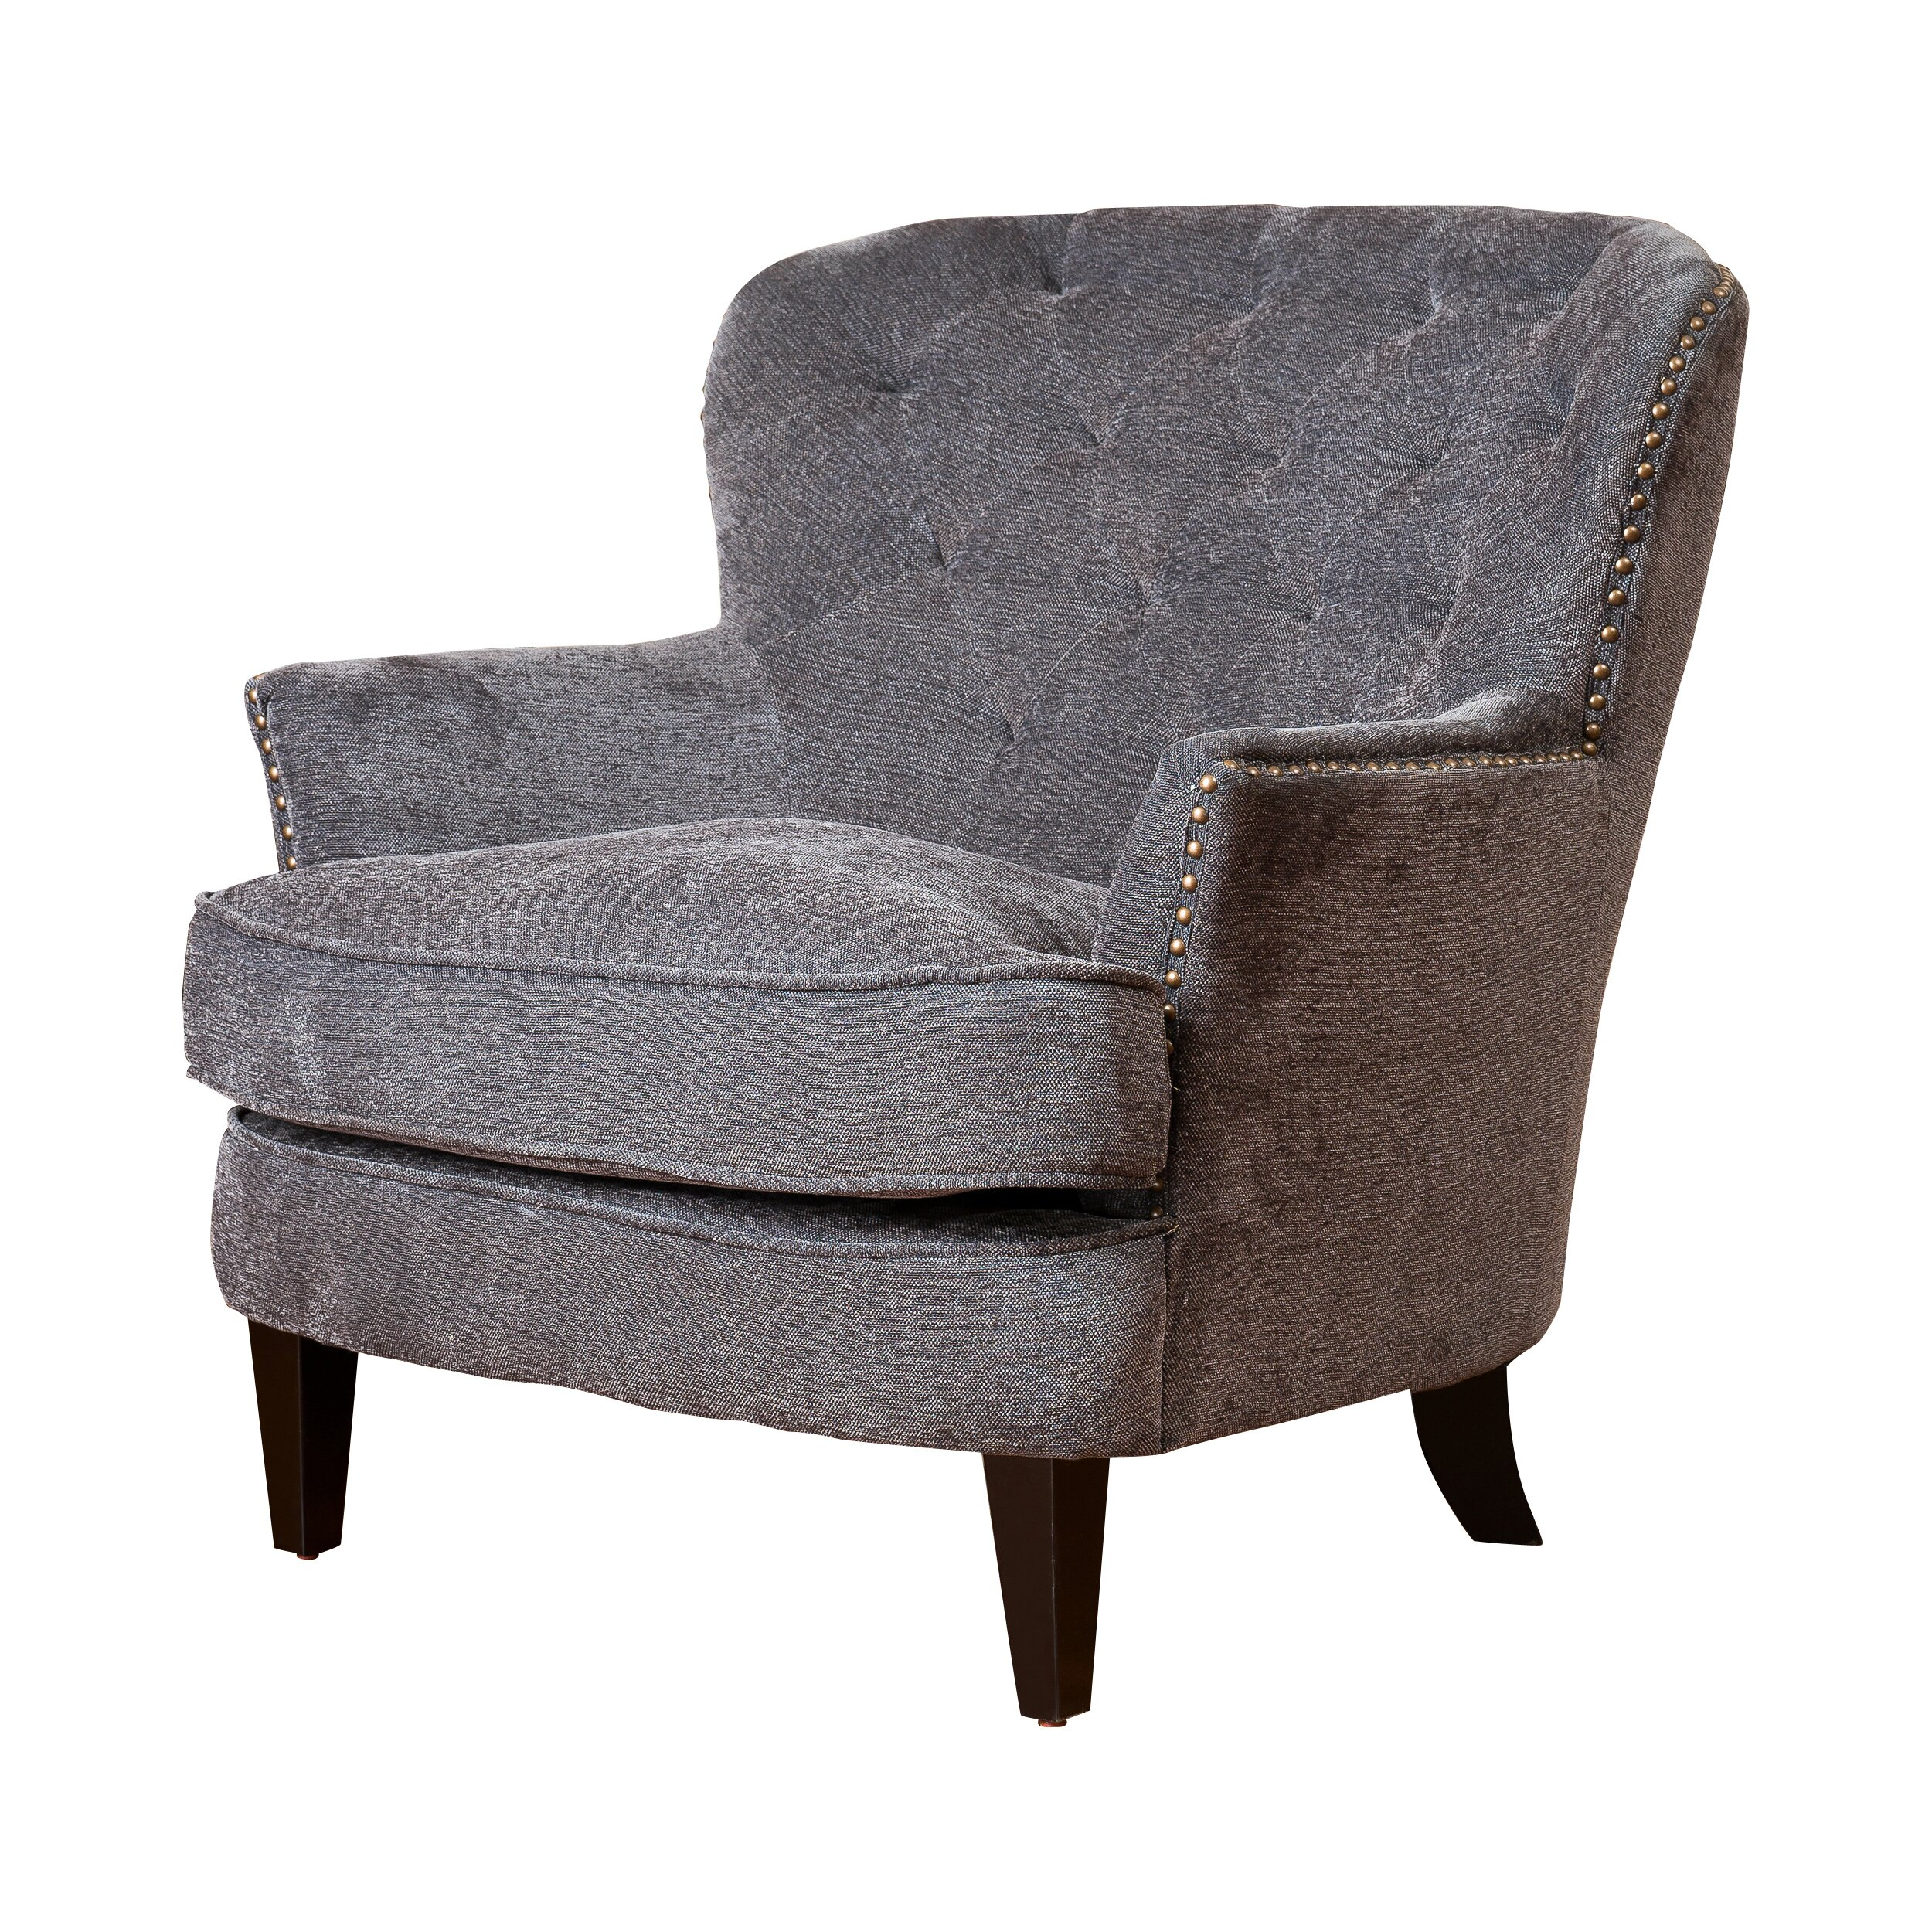 House of hampton greene tufted upholstered linen club Tufted accent chair